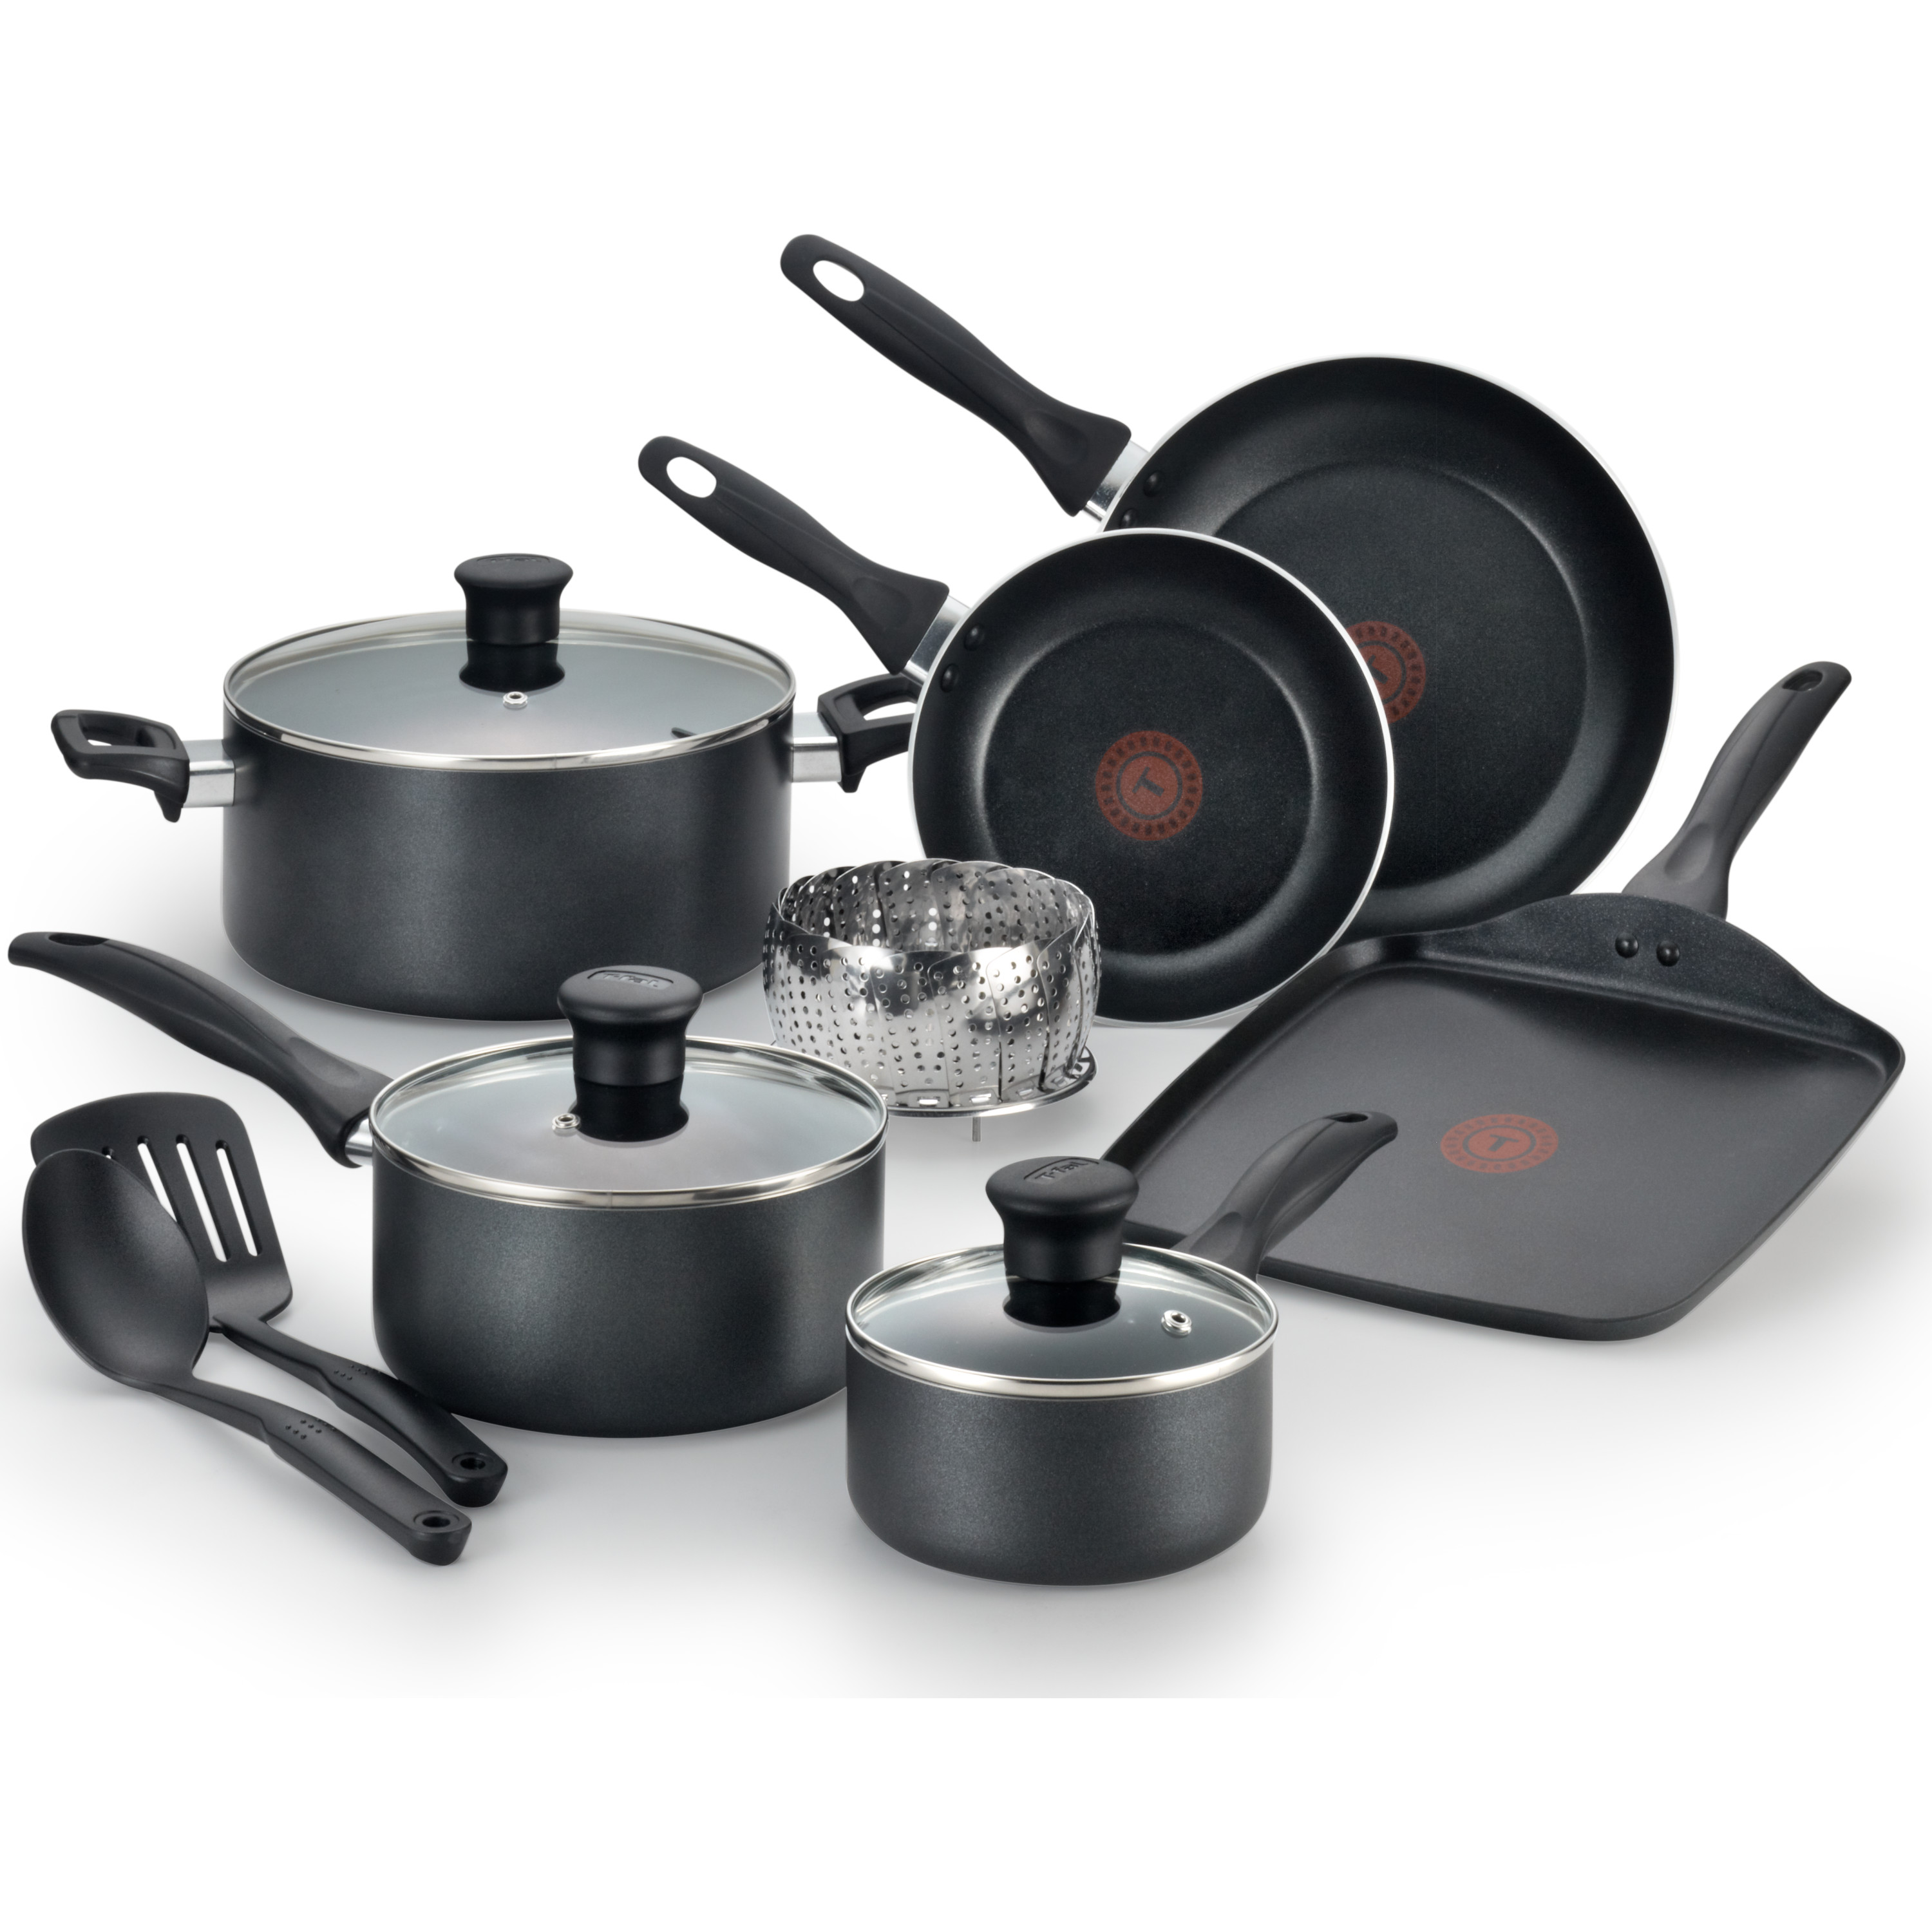 T-fal, Easy Care Nonstick, B145SA, Dishwasher Safe Cookware, 12 Pc. Set, Black